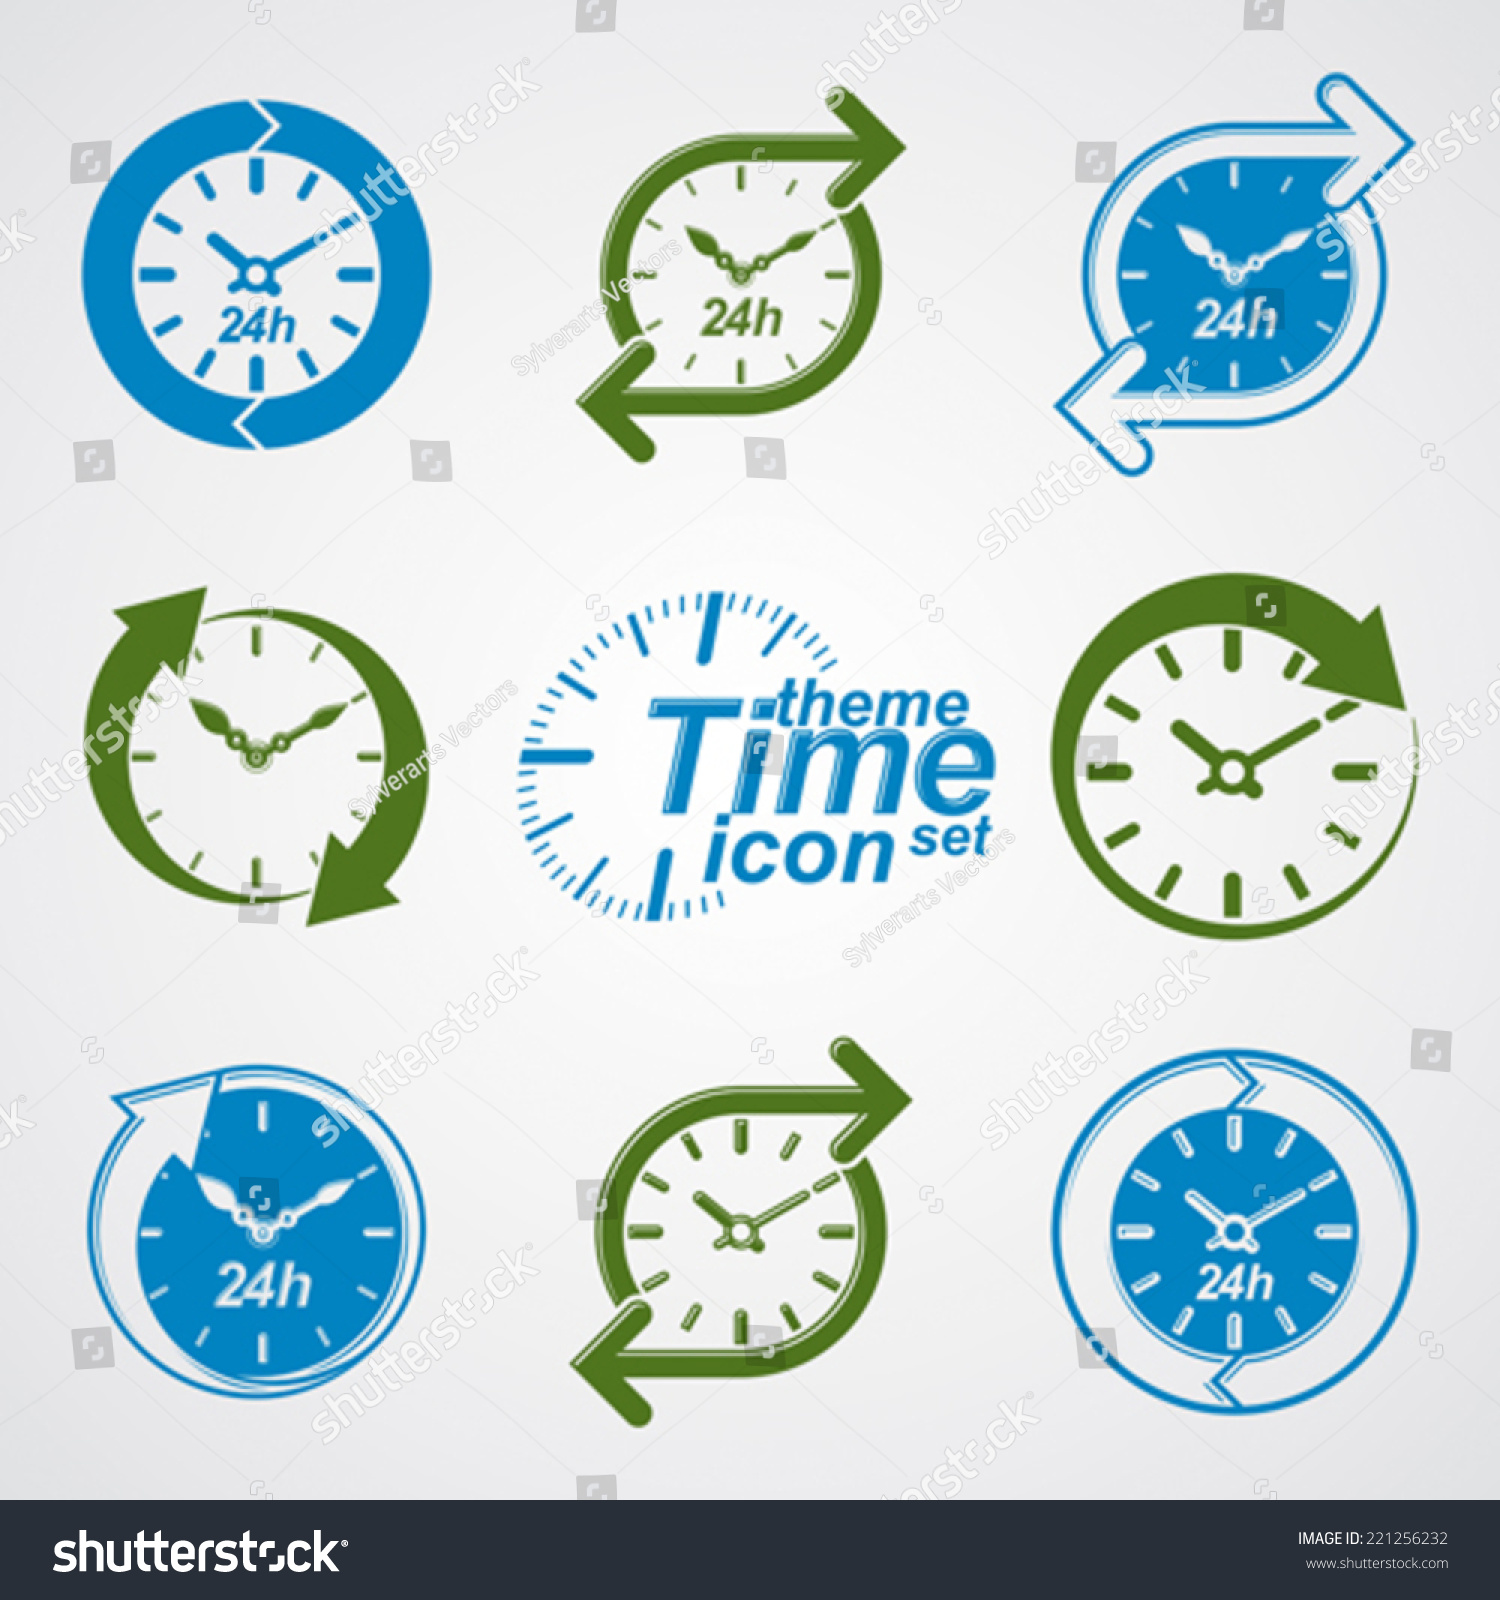 Set Of Graphic Web Vector 24 Hours Timers Around The